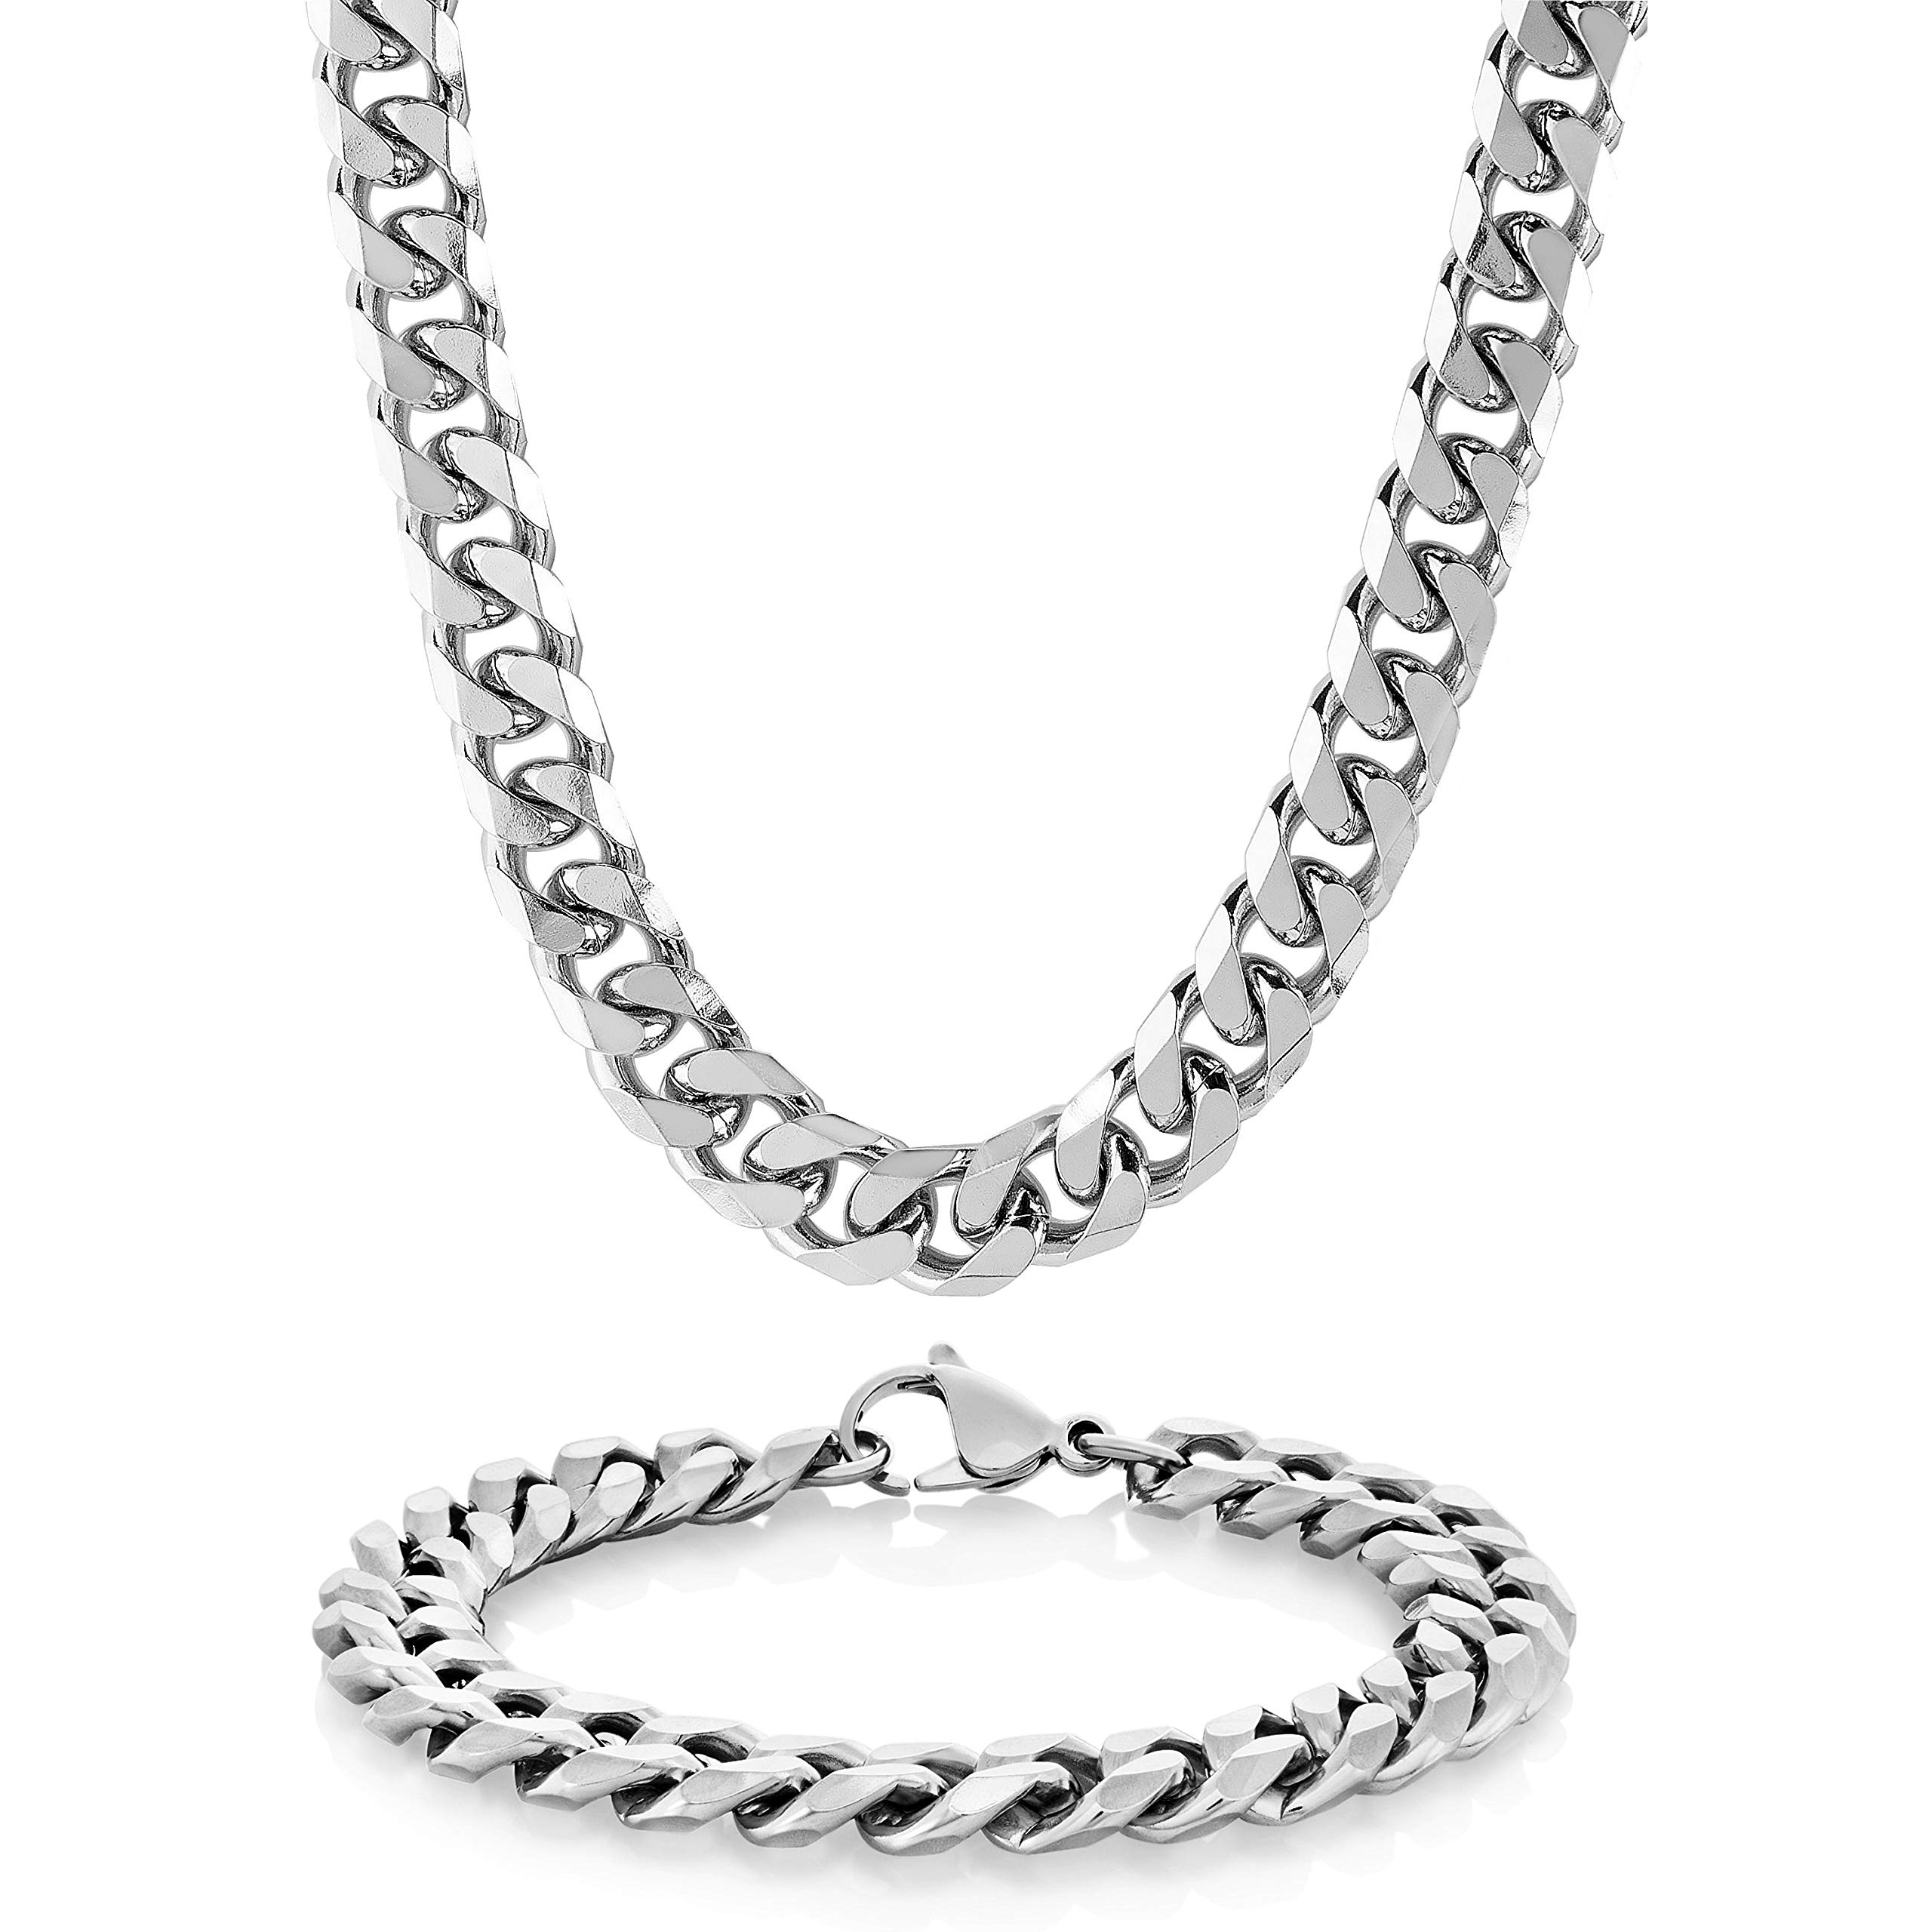 Jstyle Stainless Steel Male Chain Necklace Mens Bracelet Jewelry Set 8.5 inch 22 24 30 inch 8mm Wide